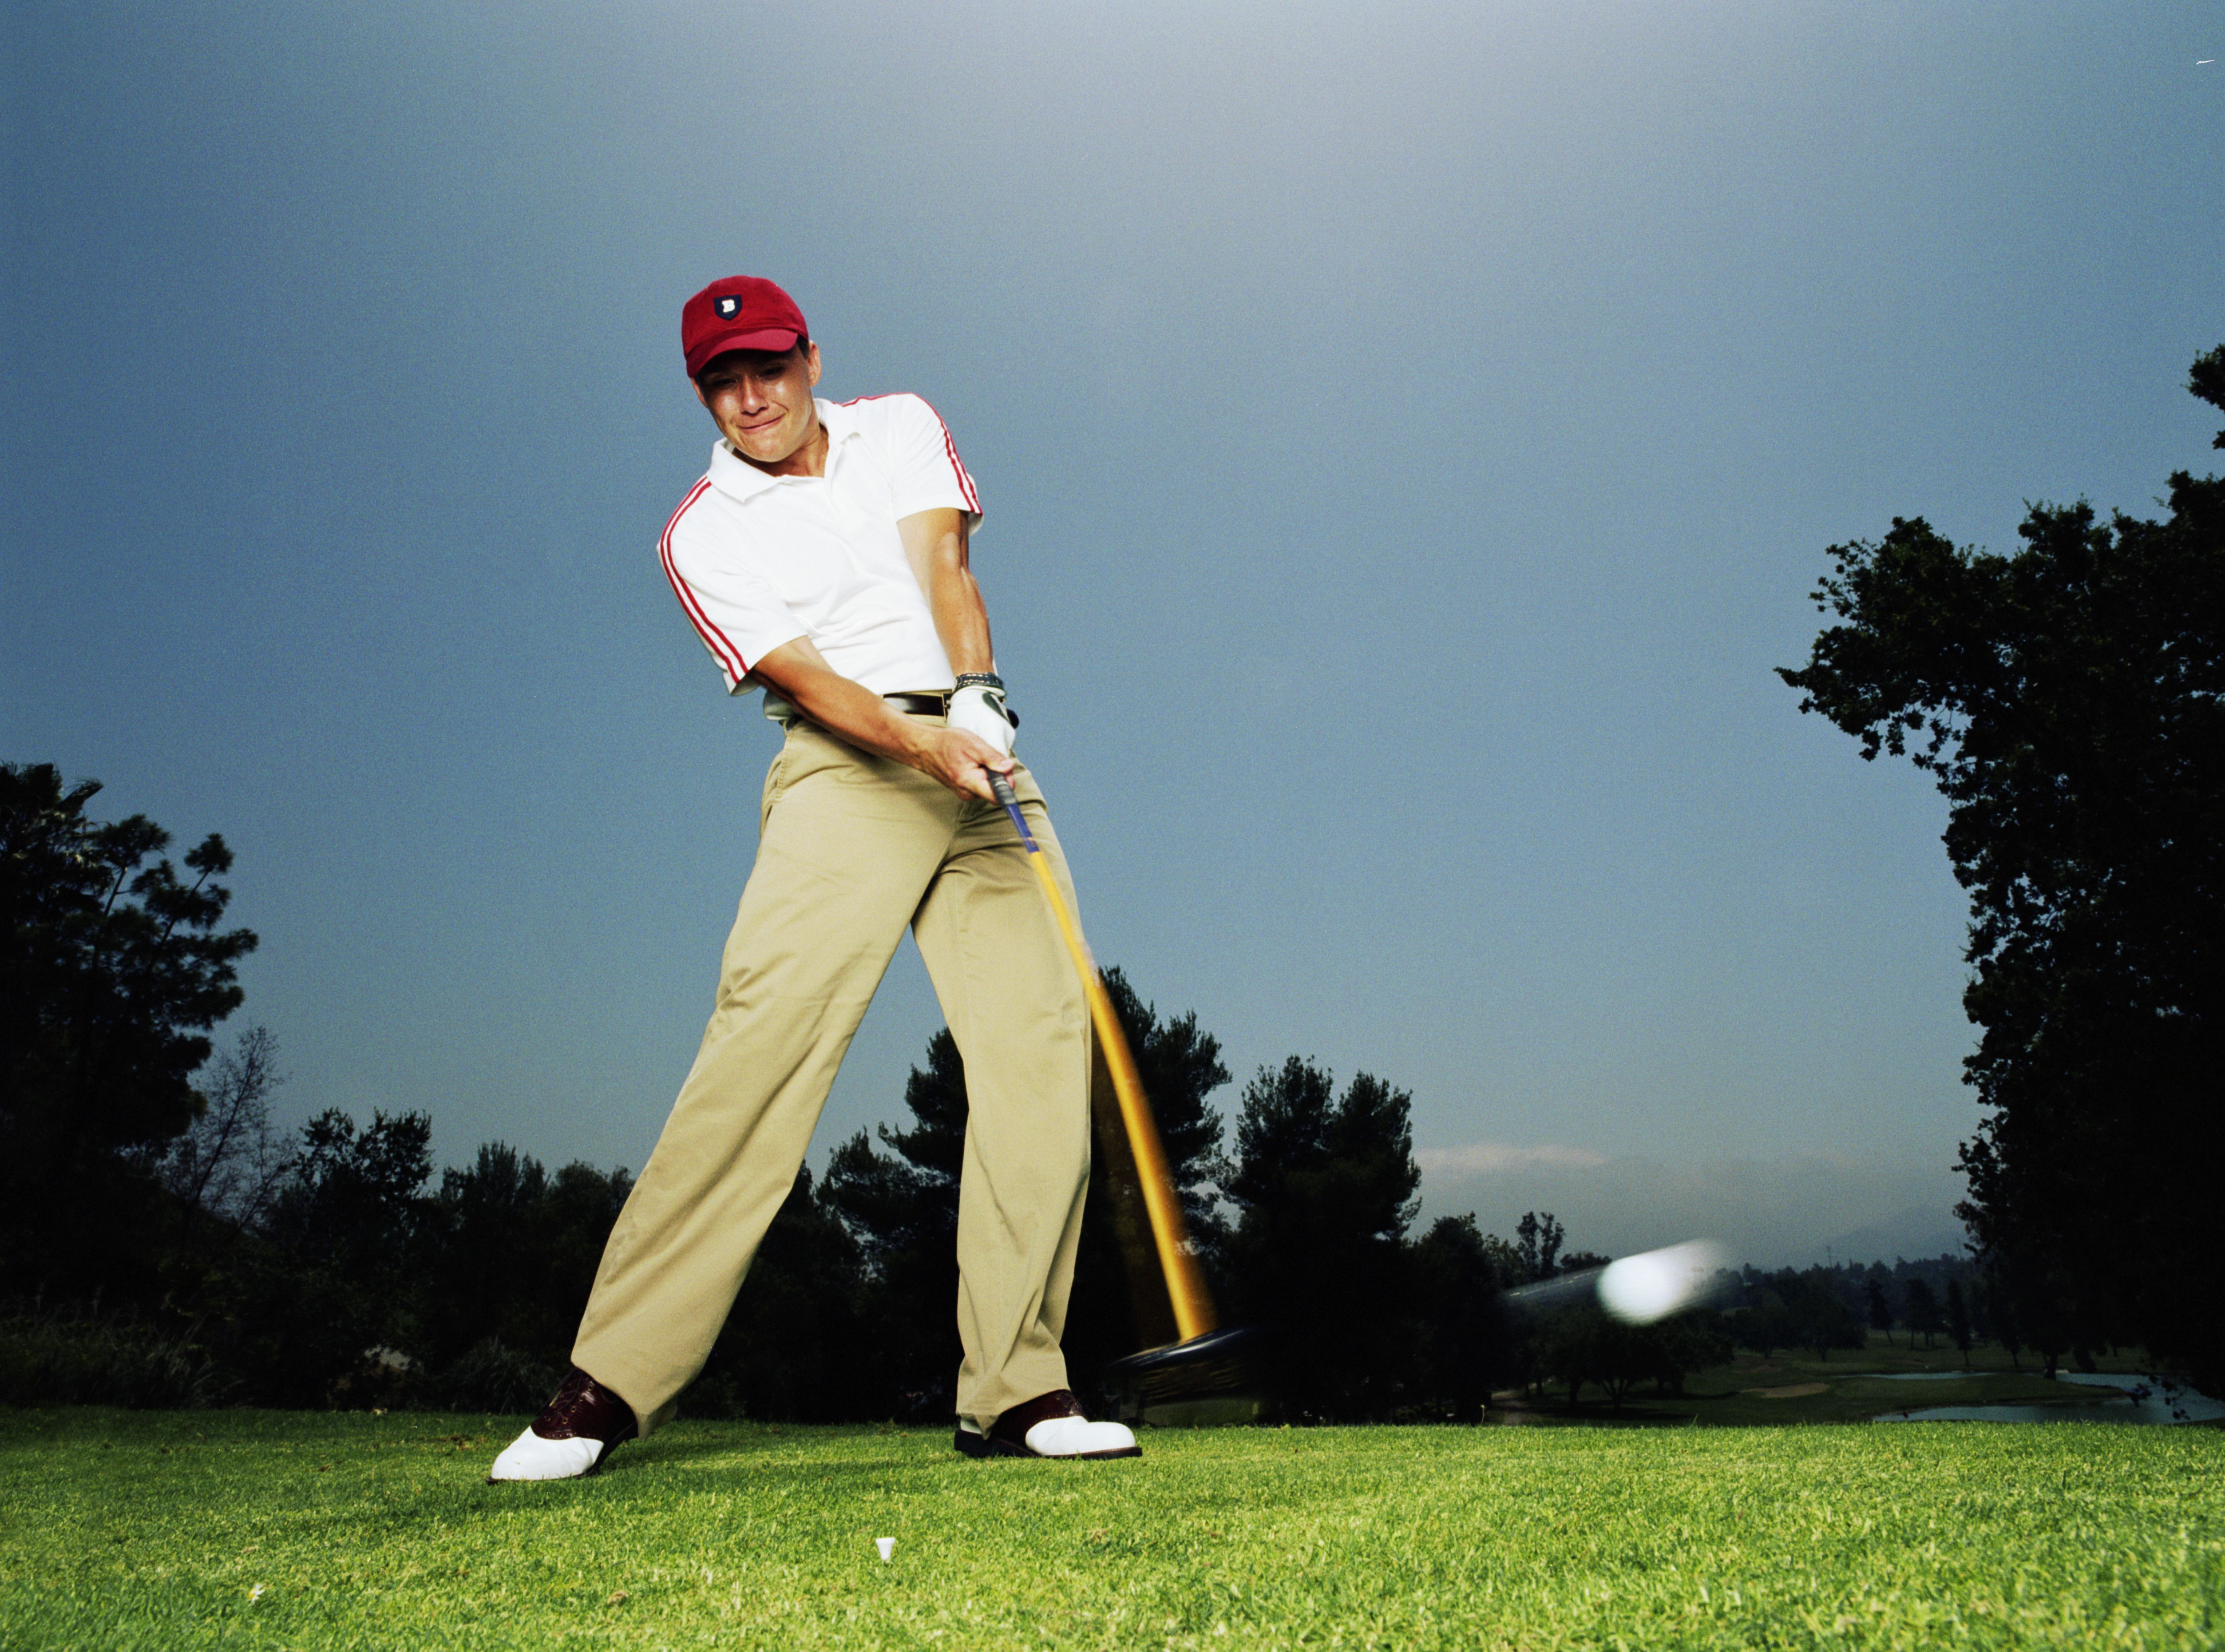 How Angle of Attack Affects Golf Shots